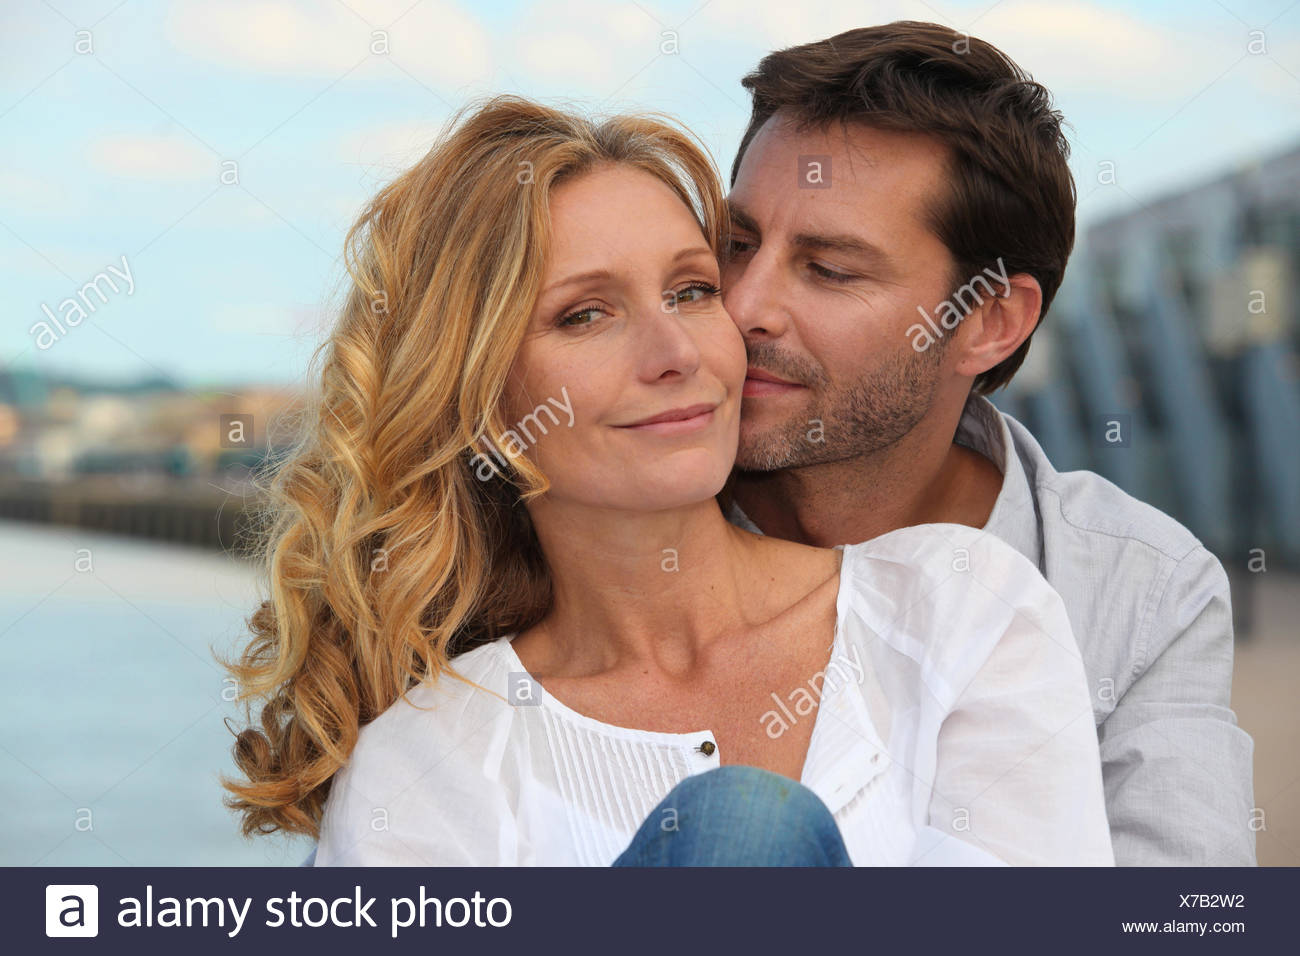 affection affectionate adore - Stock Image